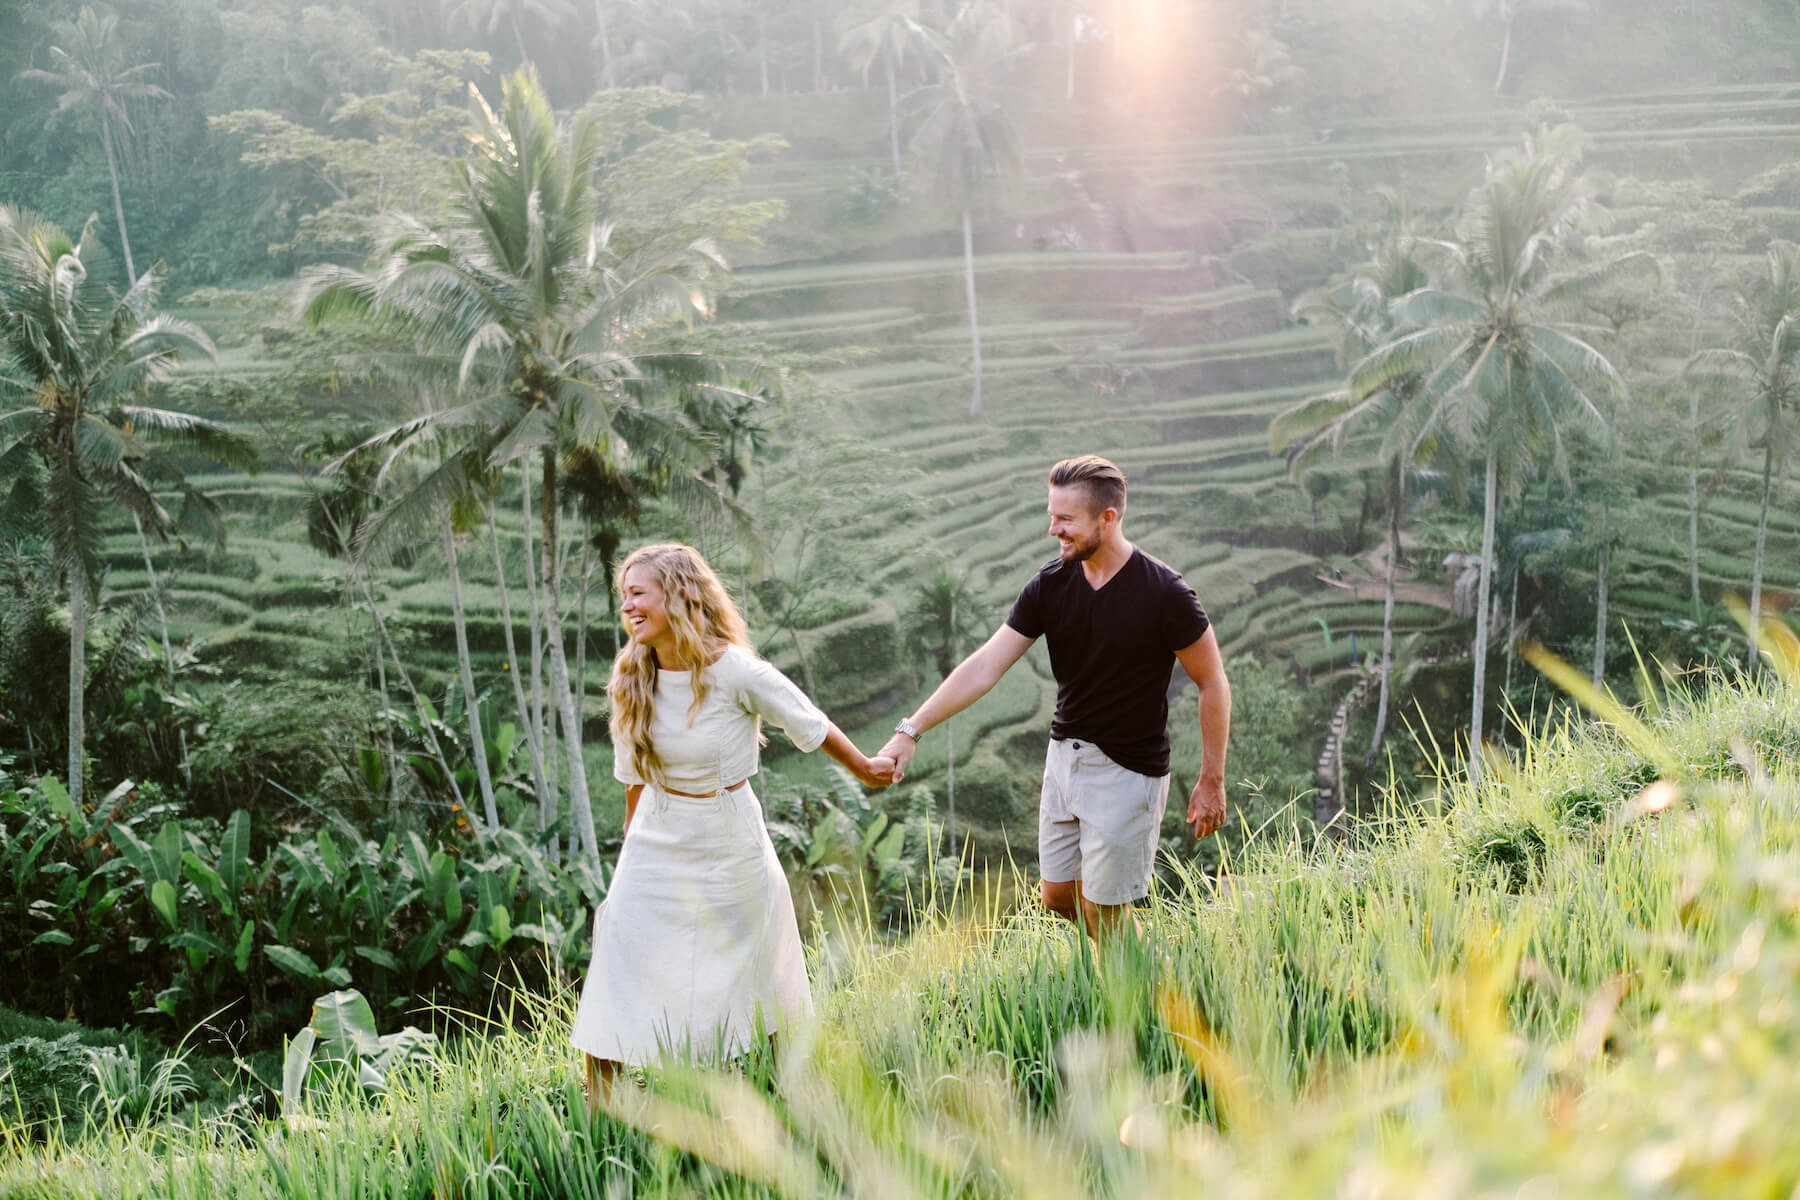 Couple in the Tegalalang Rice Terrace in Bali, Indonesia captured on a Flytographer photo shoot.